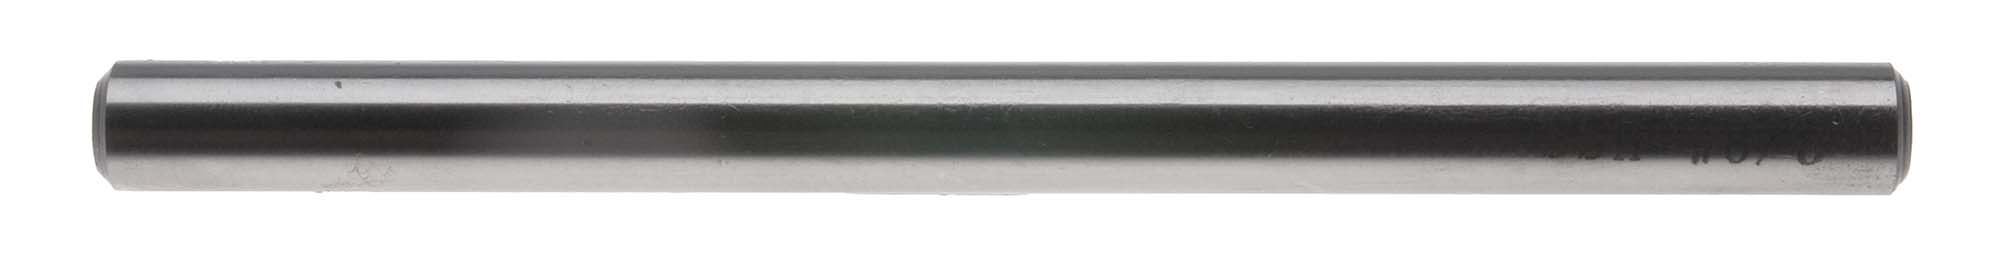 "H (.266"") Jobber Length Drill Blank, High Speed Steel"